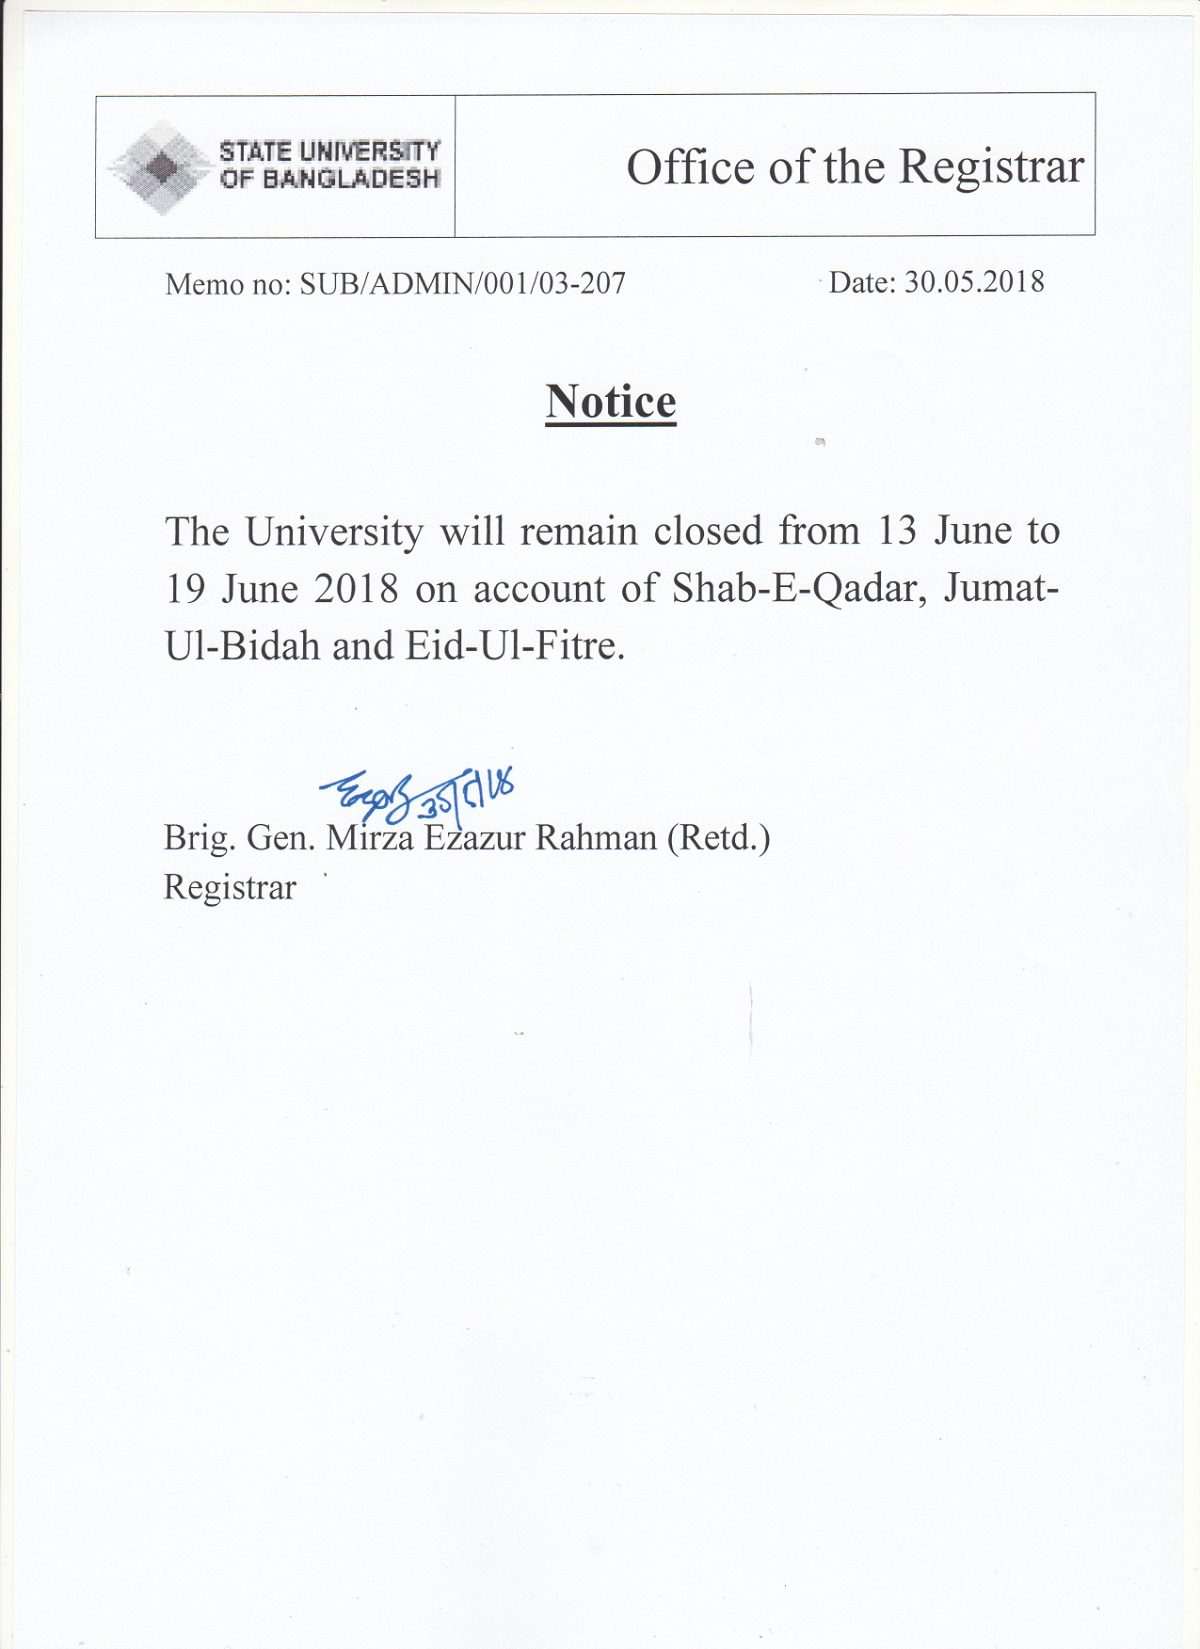 Eid Vacation Notice – Welcome to State University of Bangladesh